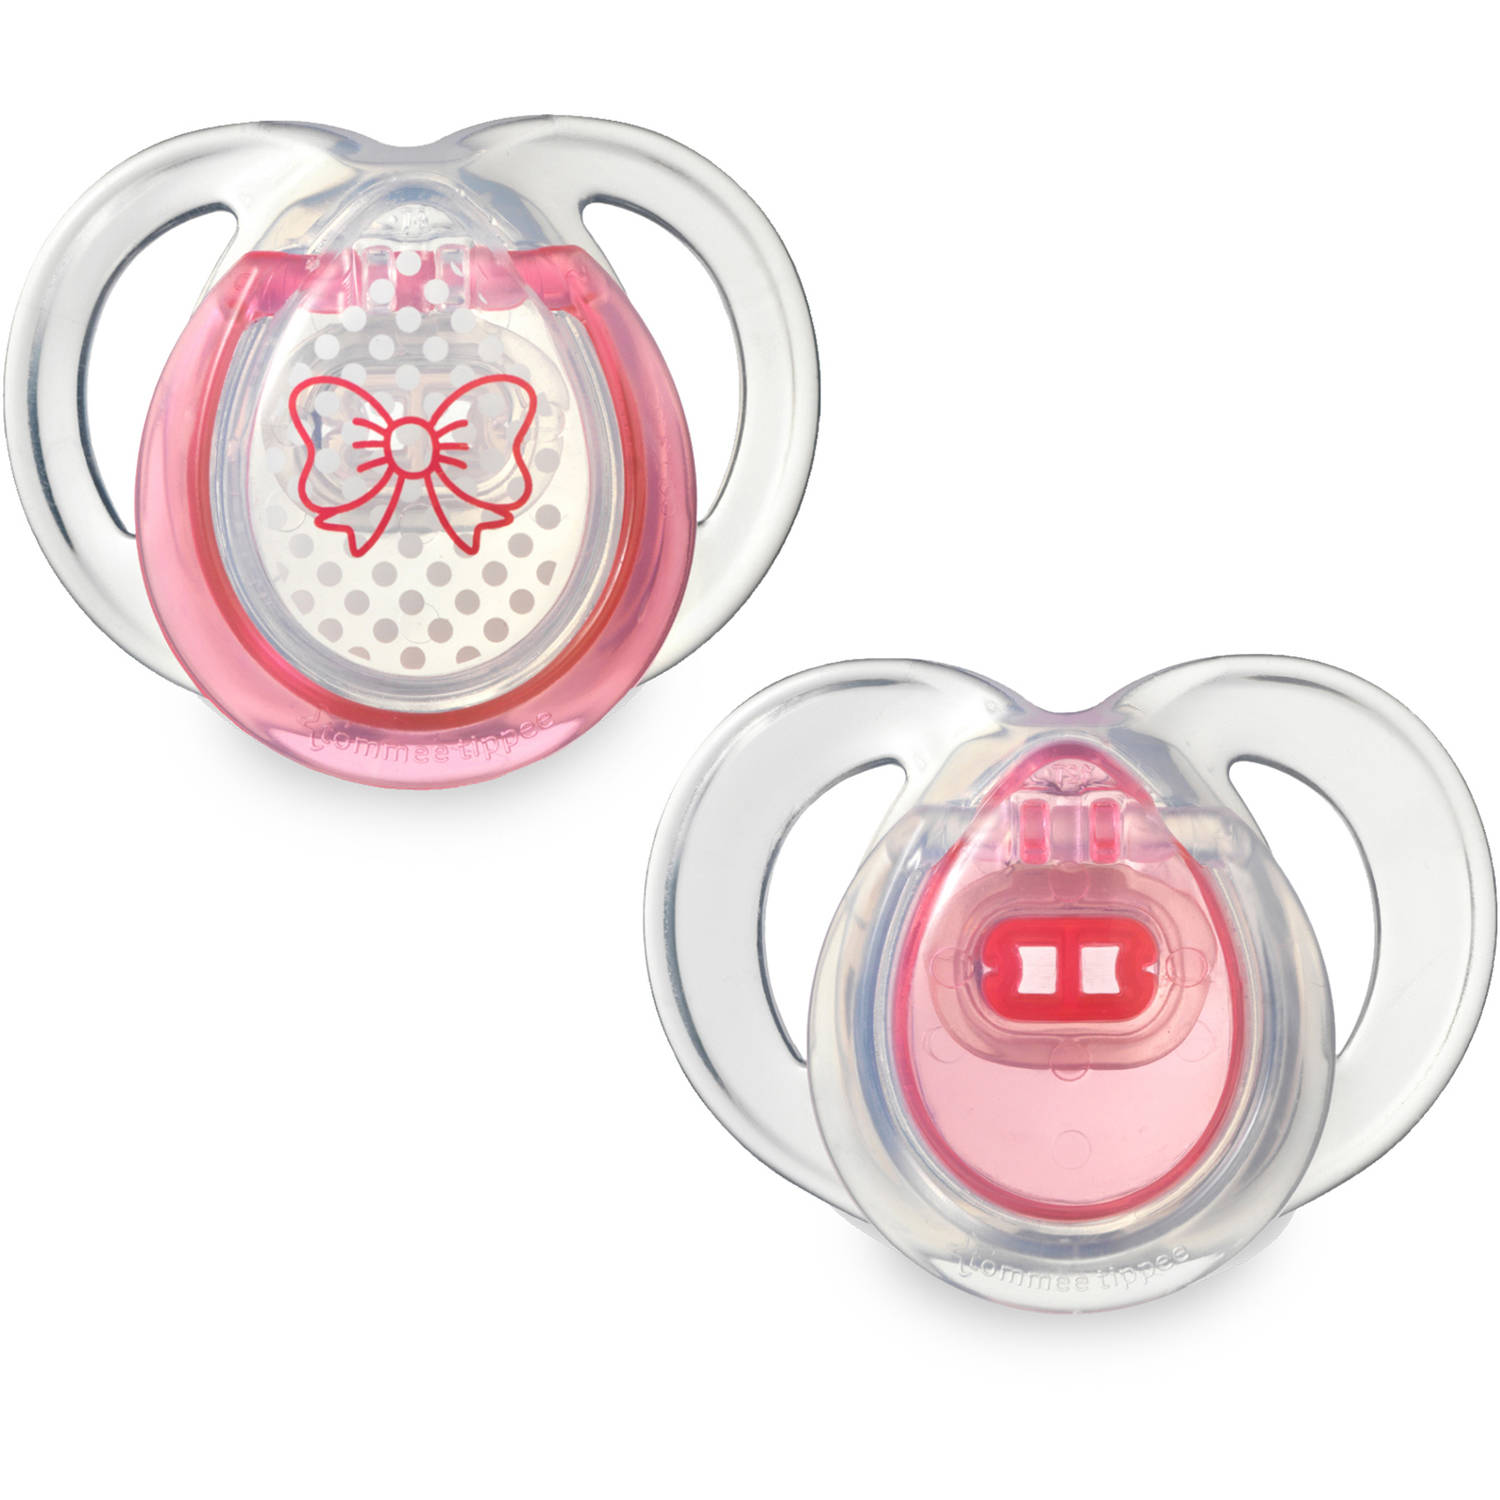 Tommee Tippee Closer to Nature 0-6 Month Everyday Pacifiers, 2pk, Girl